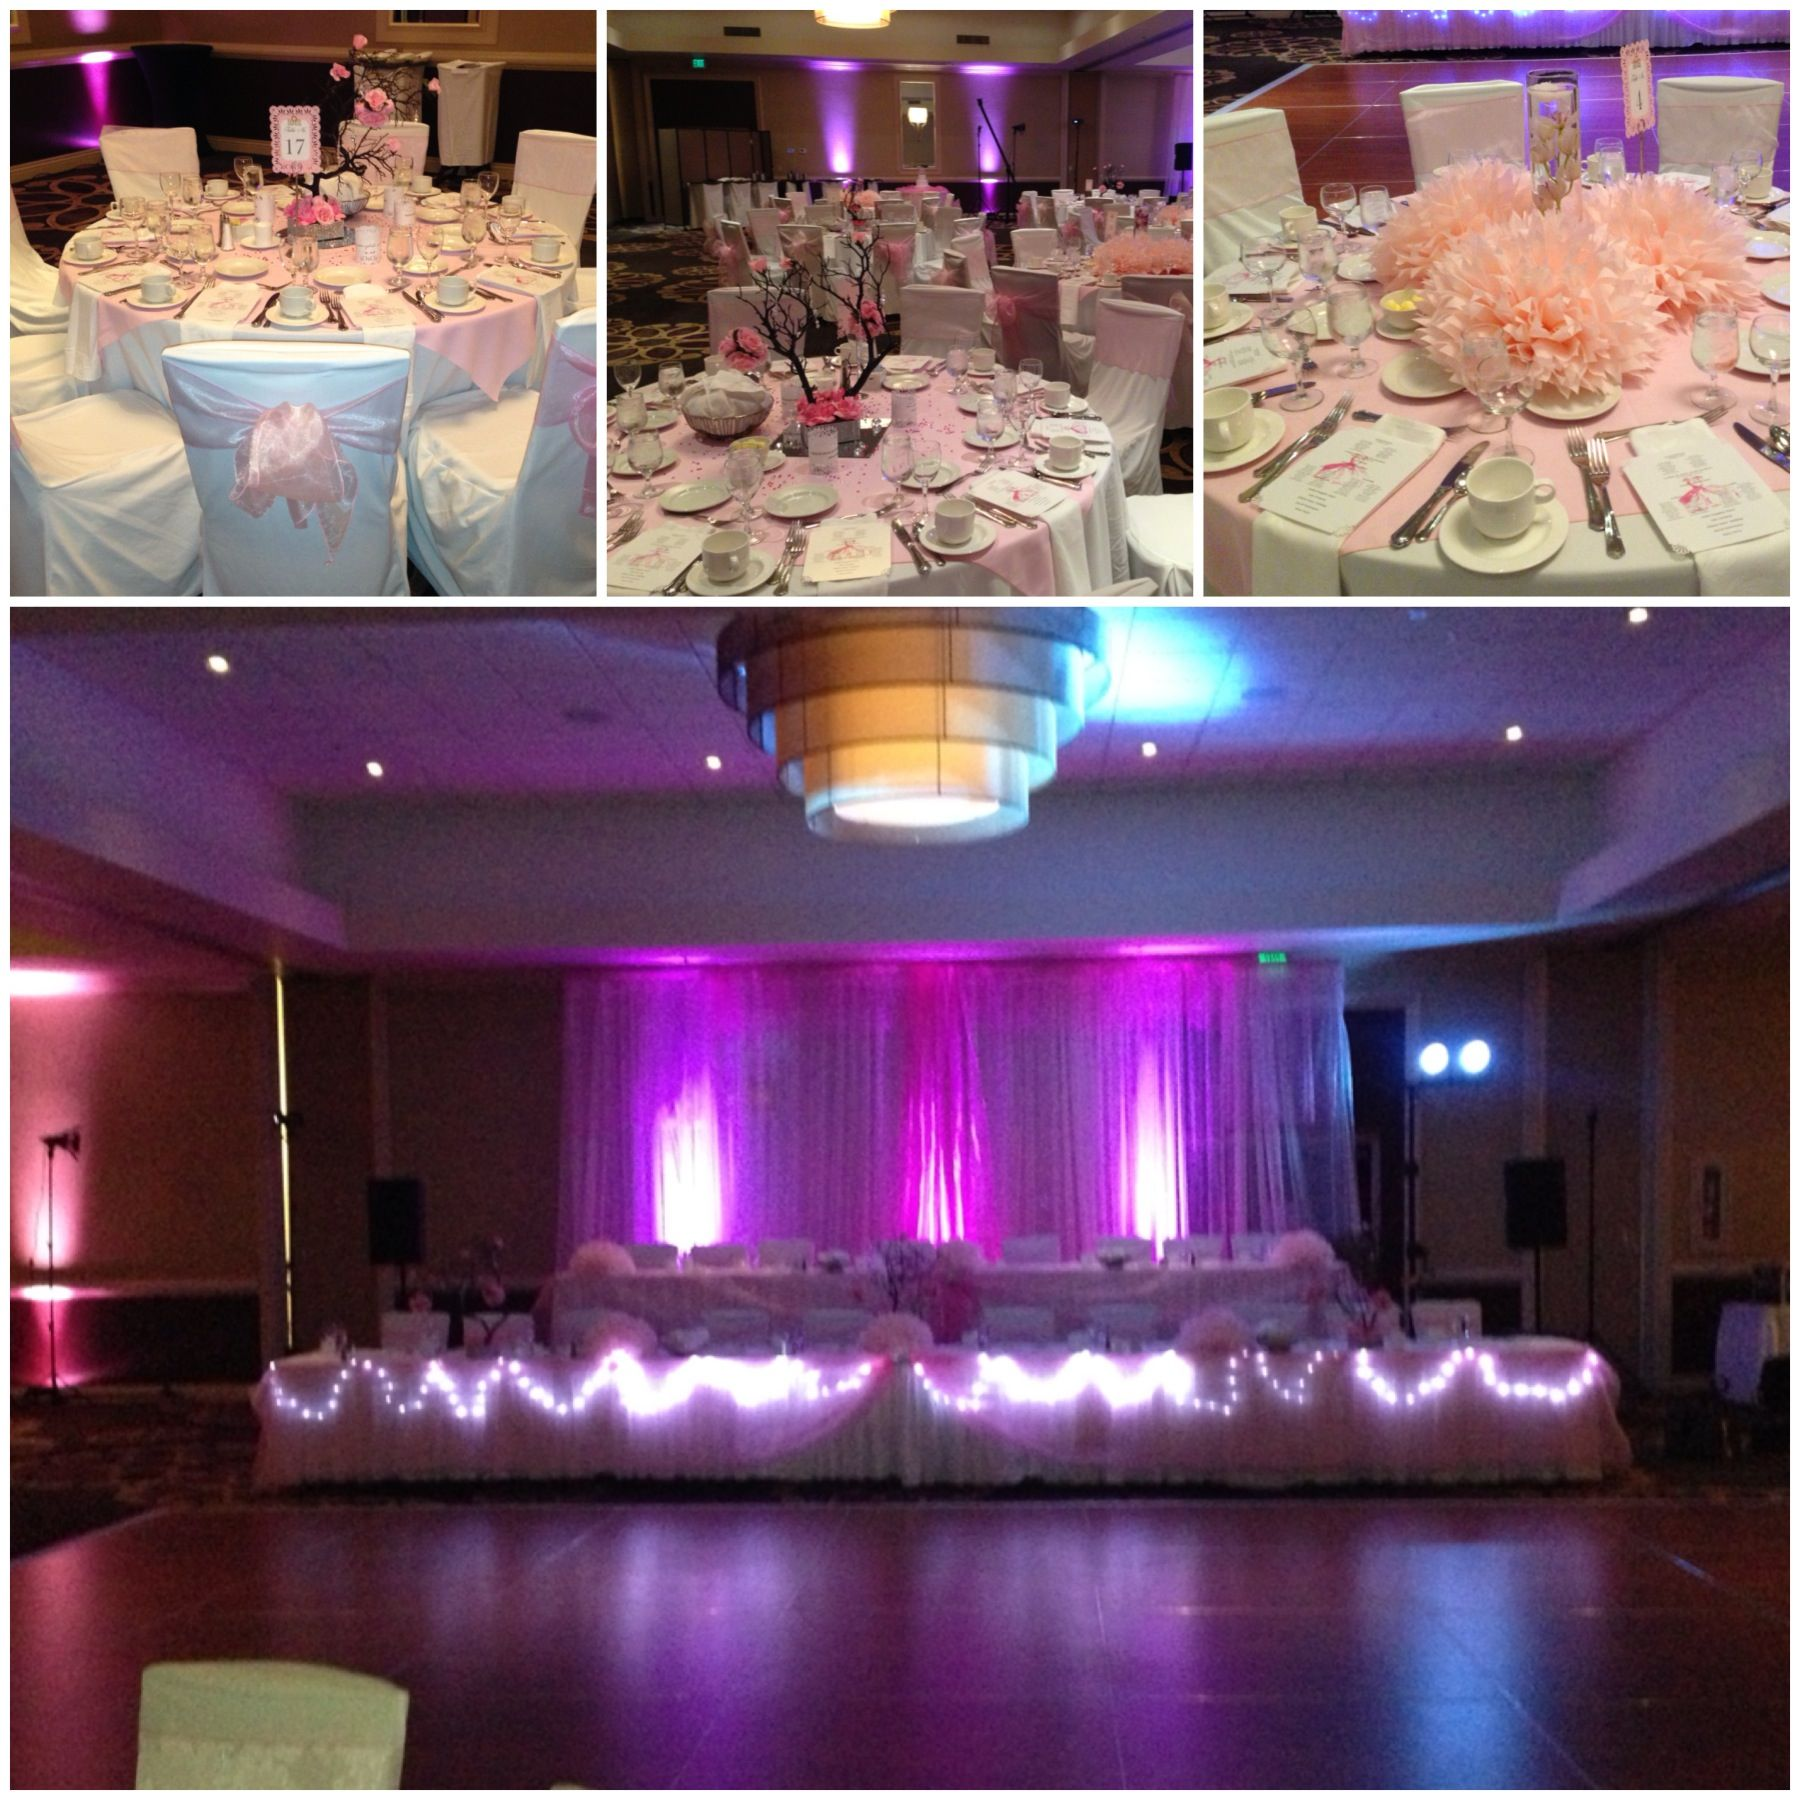 Gorgeous Reception Hall Decorations in Light pink with spotlights